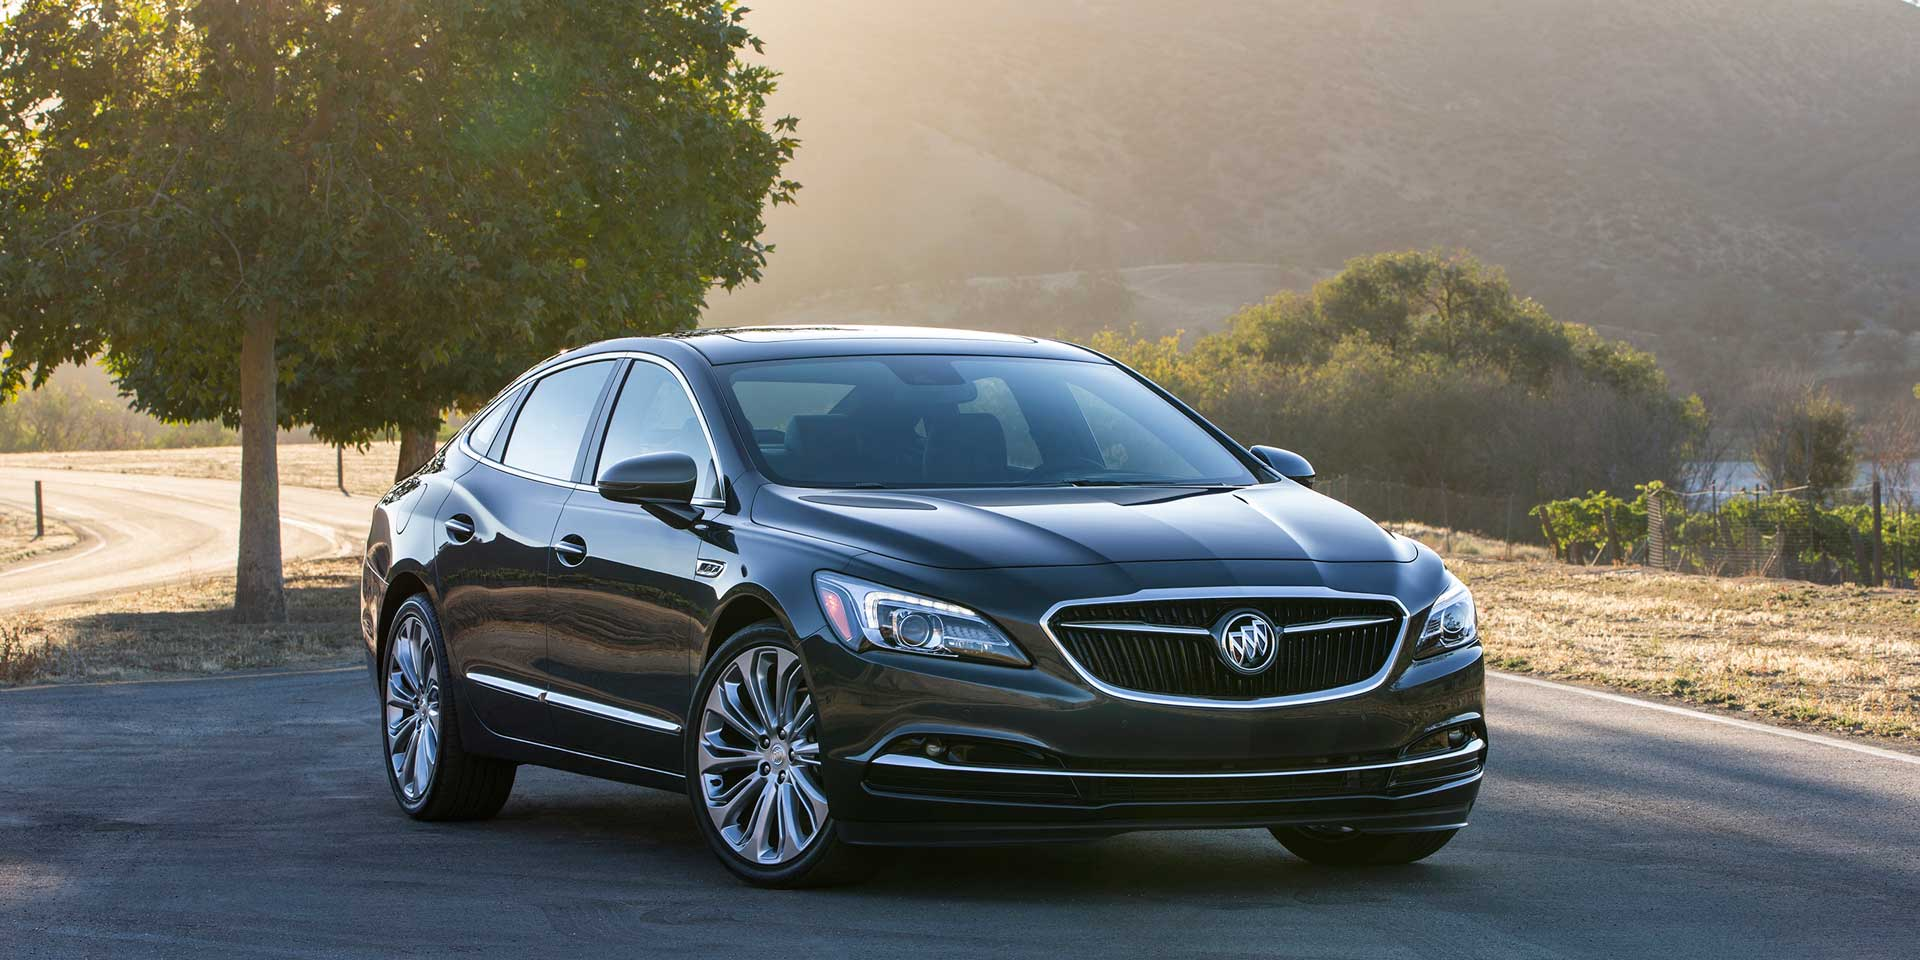 Used Cars For Sale New Cars For Sale Car Dealers Cars Chicago - Buick dealers chicago